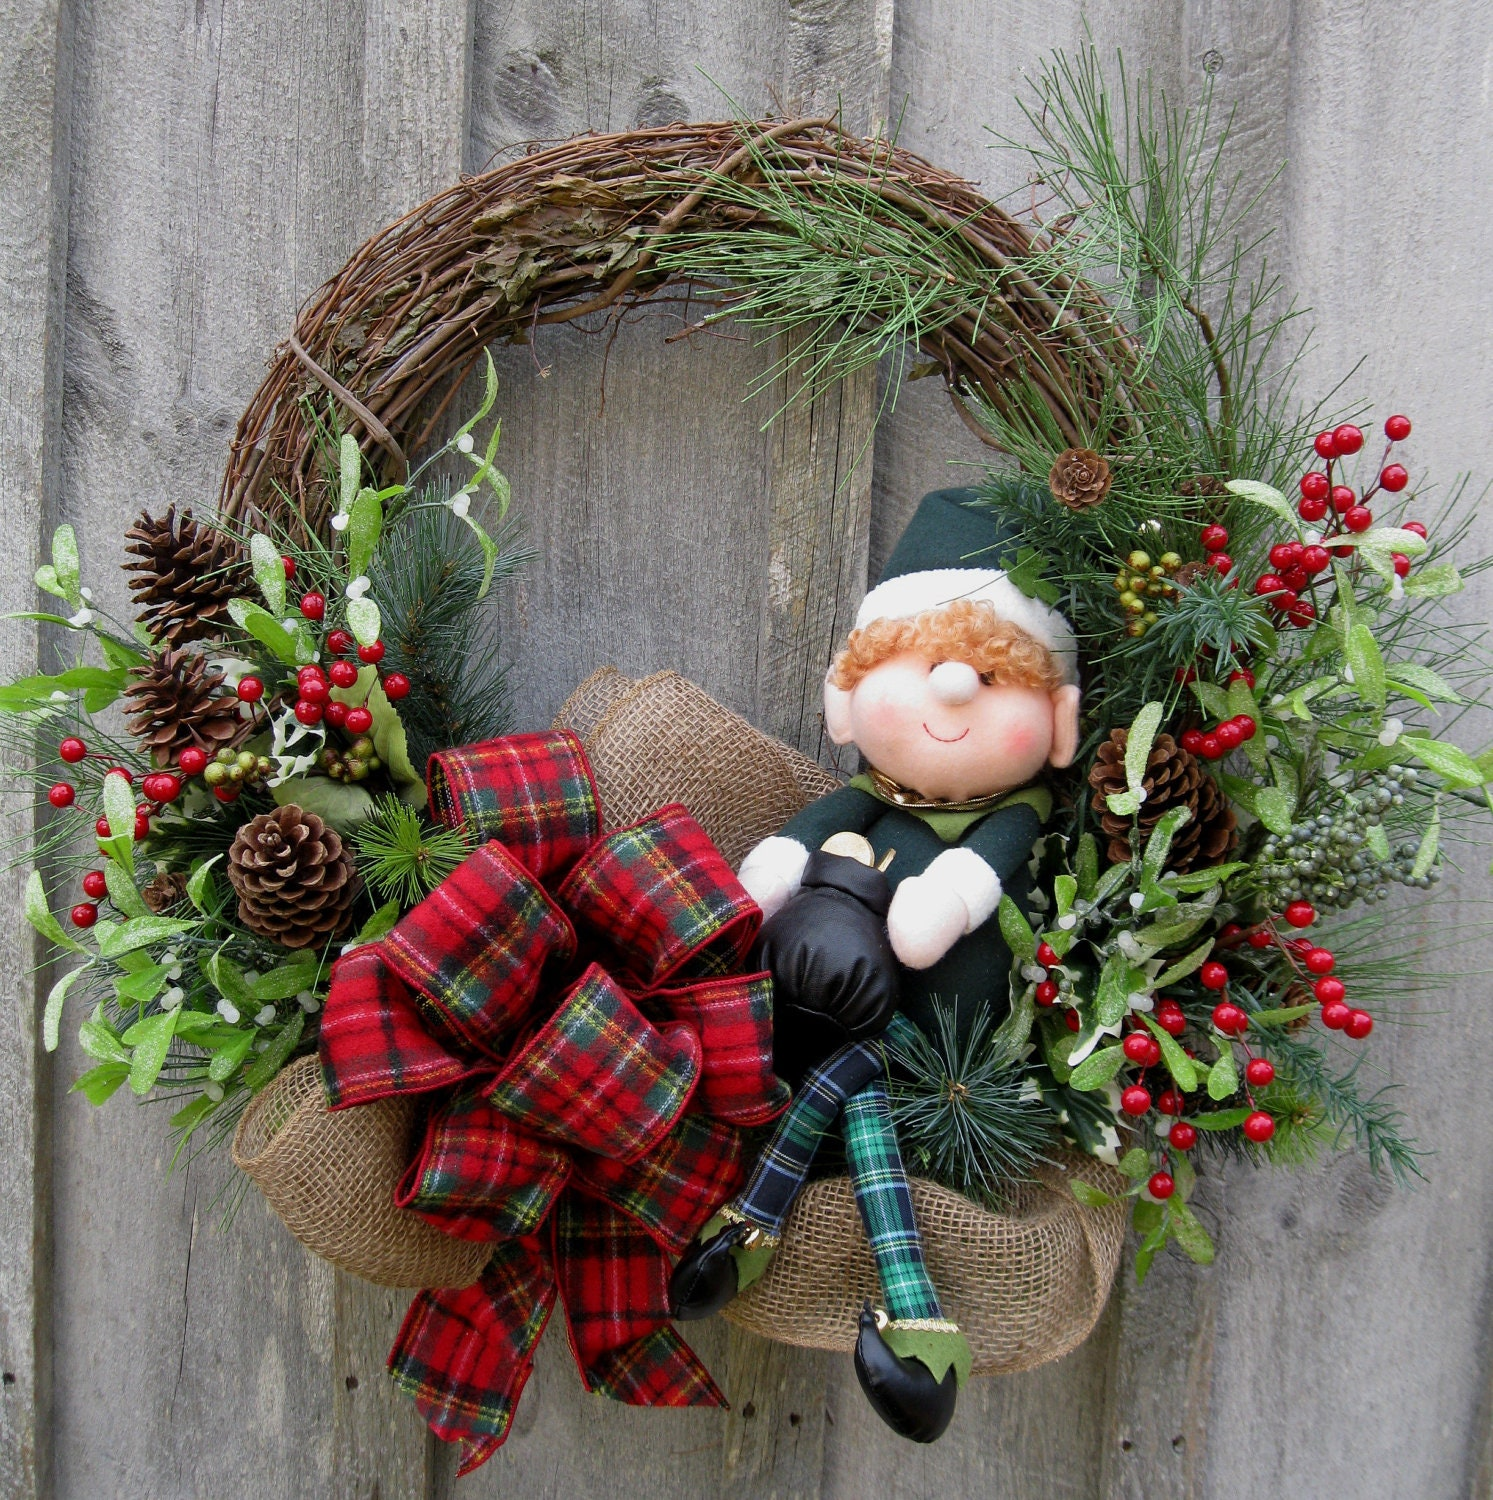 Christmas wreath holiday wreath woodland d cor irish Christmas wreath decorations